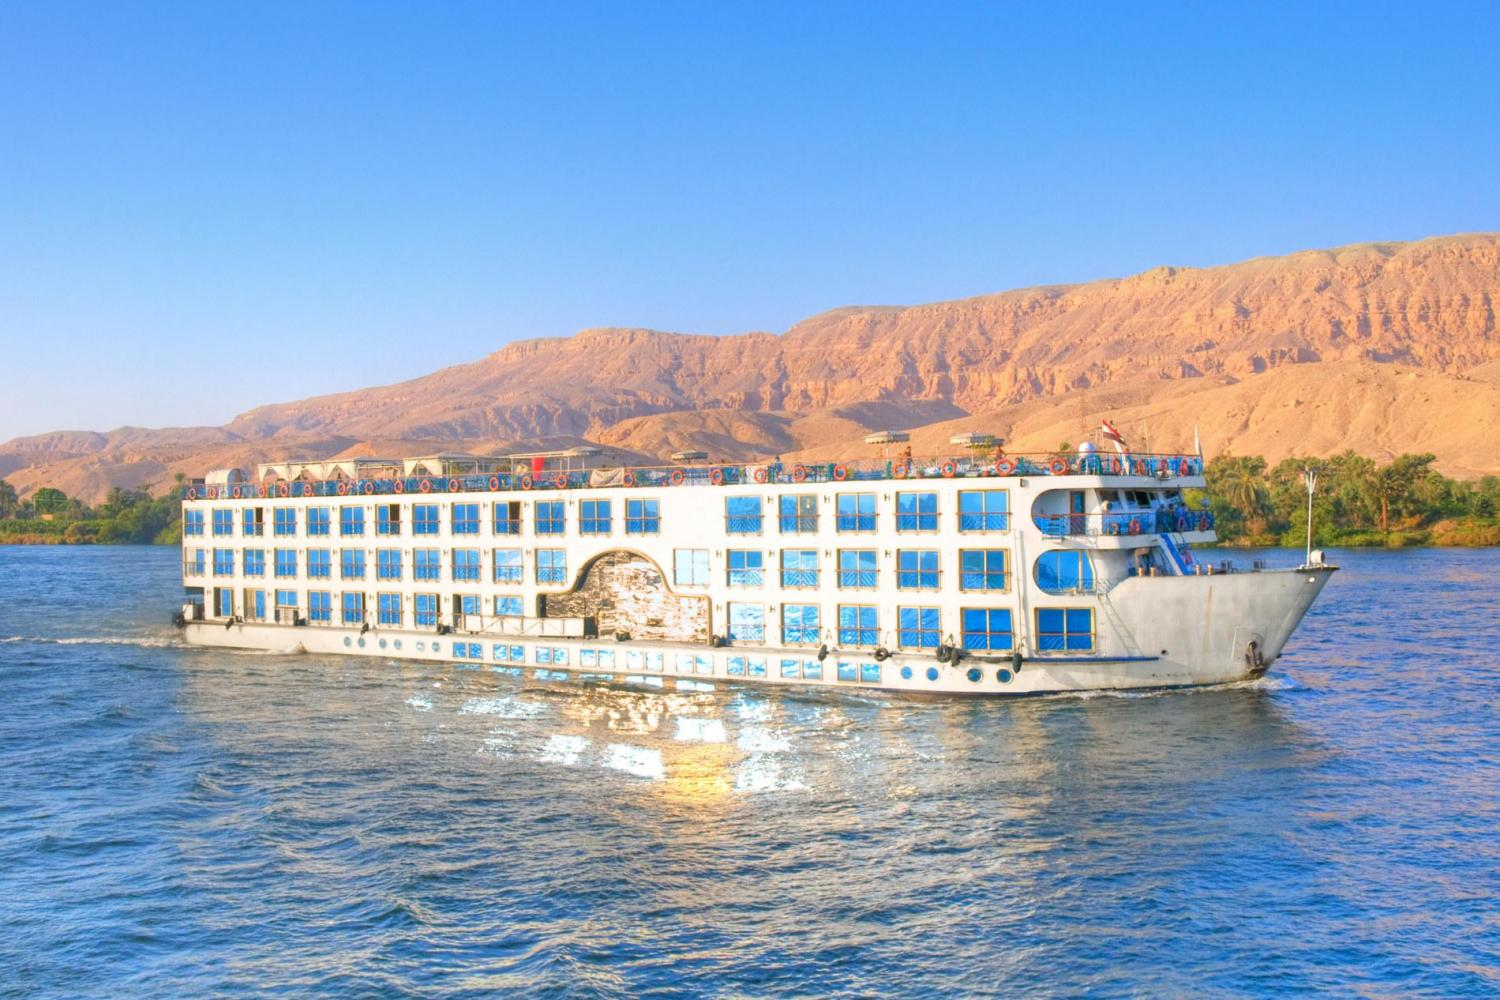 3 Nights / 4 Days MS Amwaj Nile Cruise from Aswan to Luxor